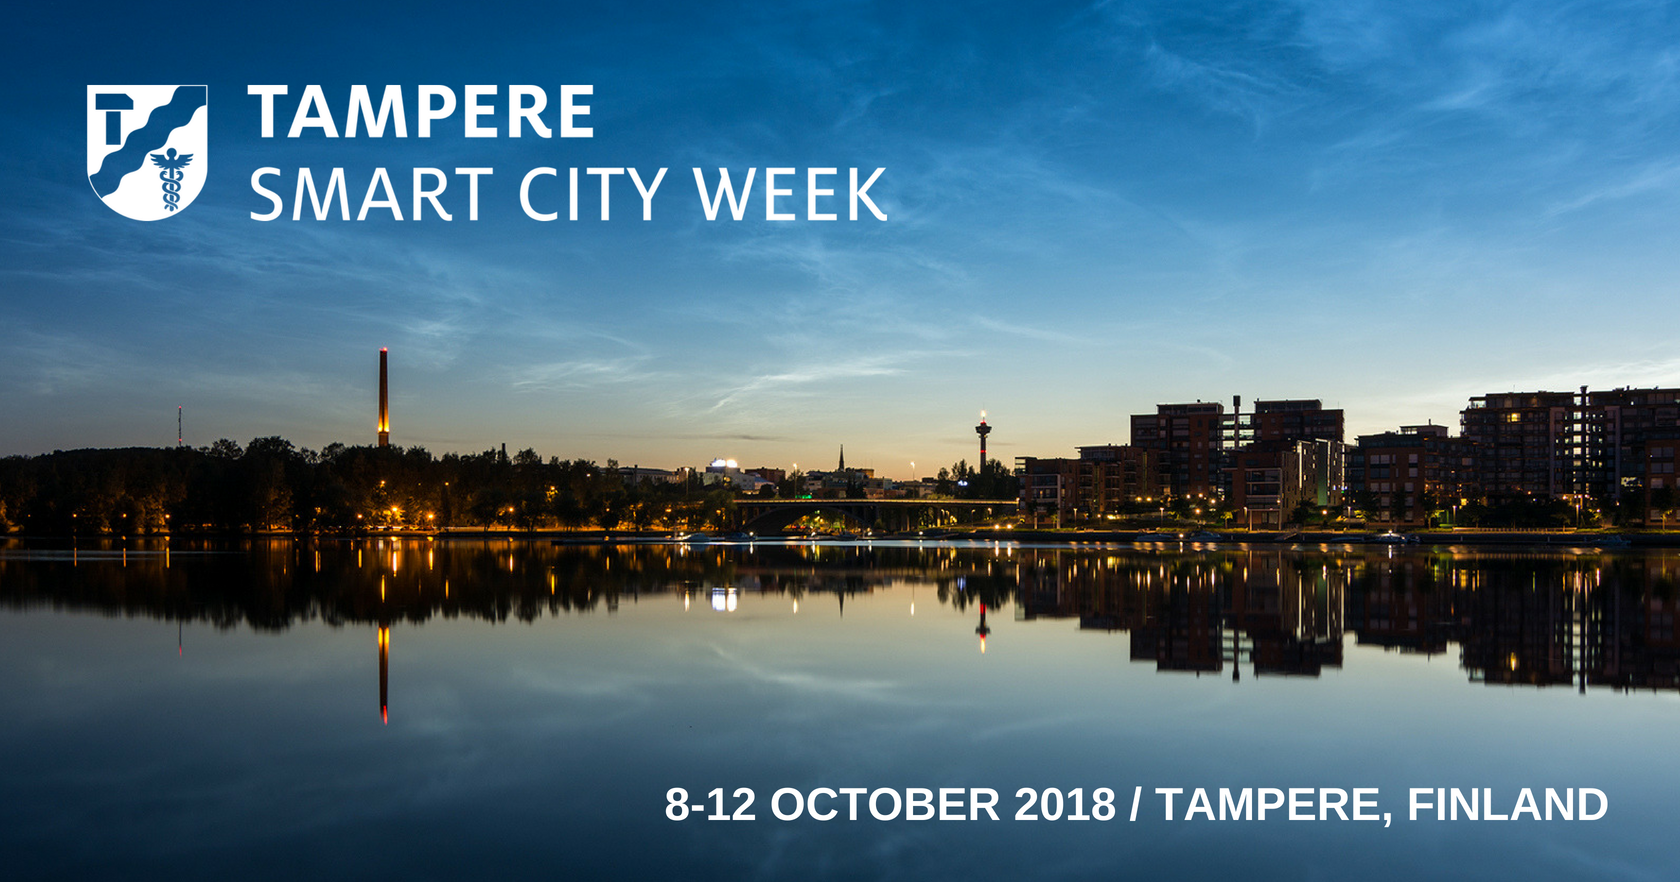 Tampere Smart City Week